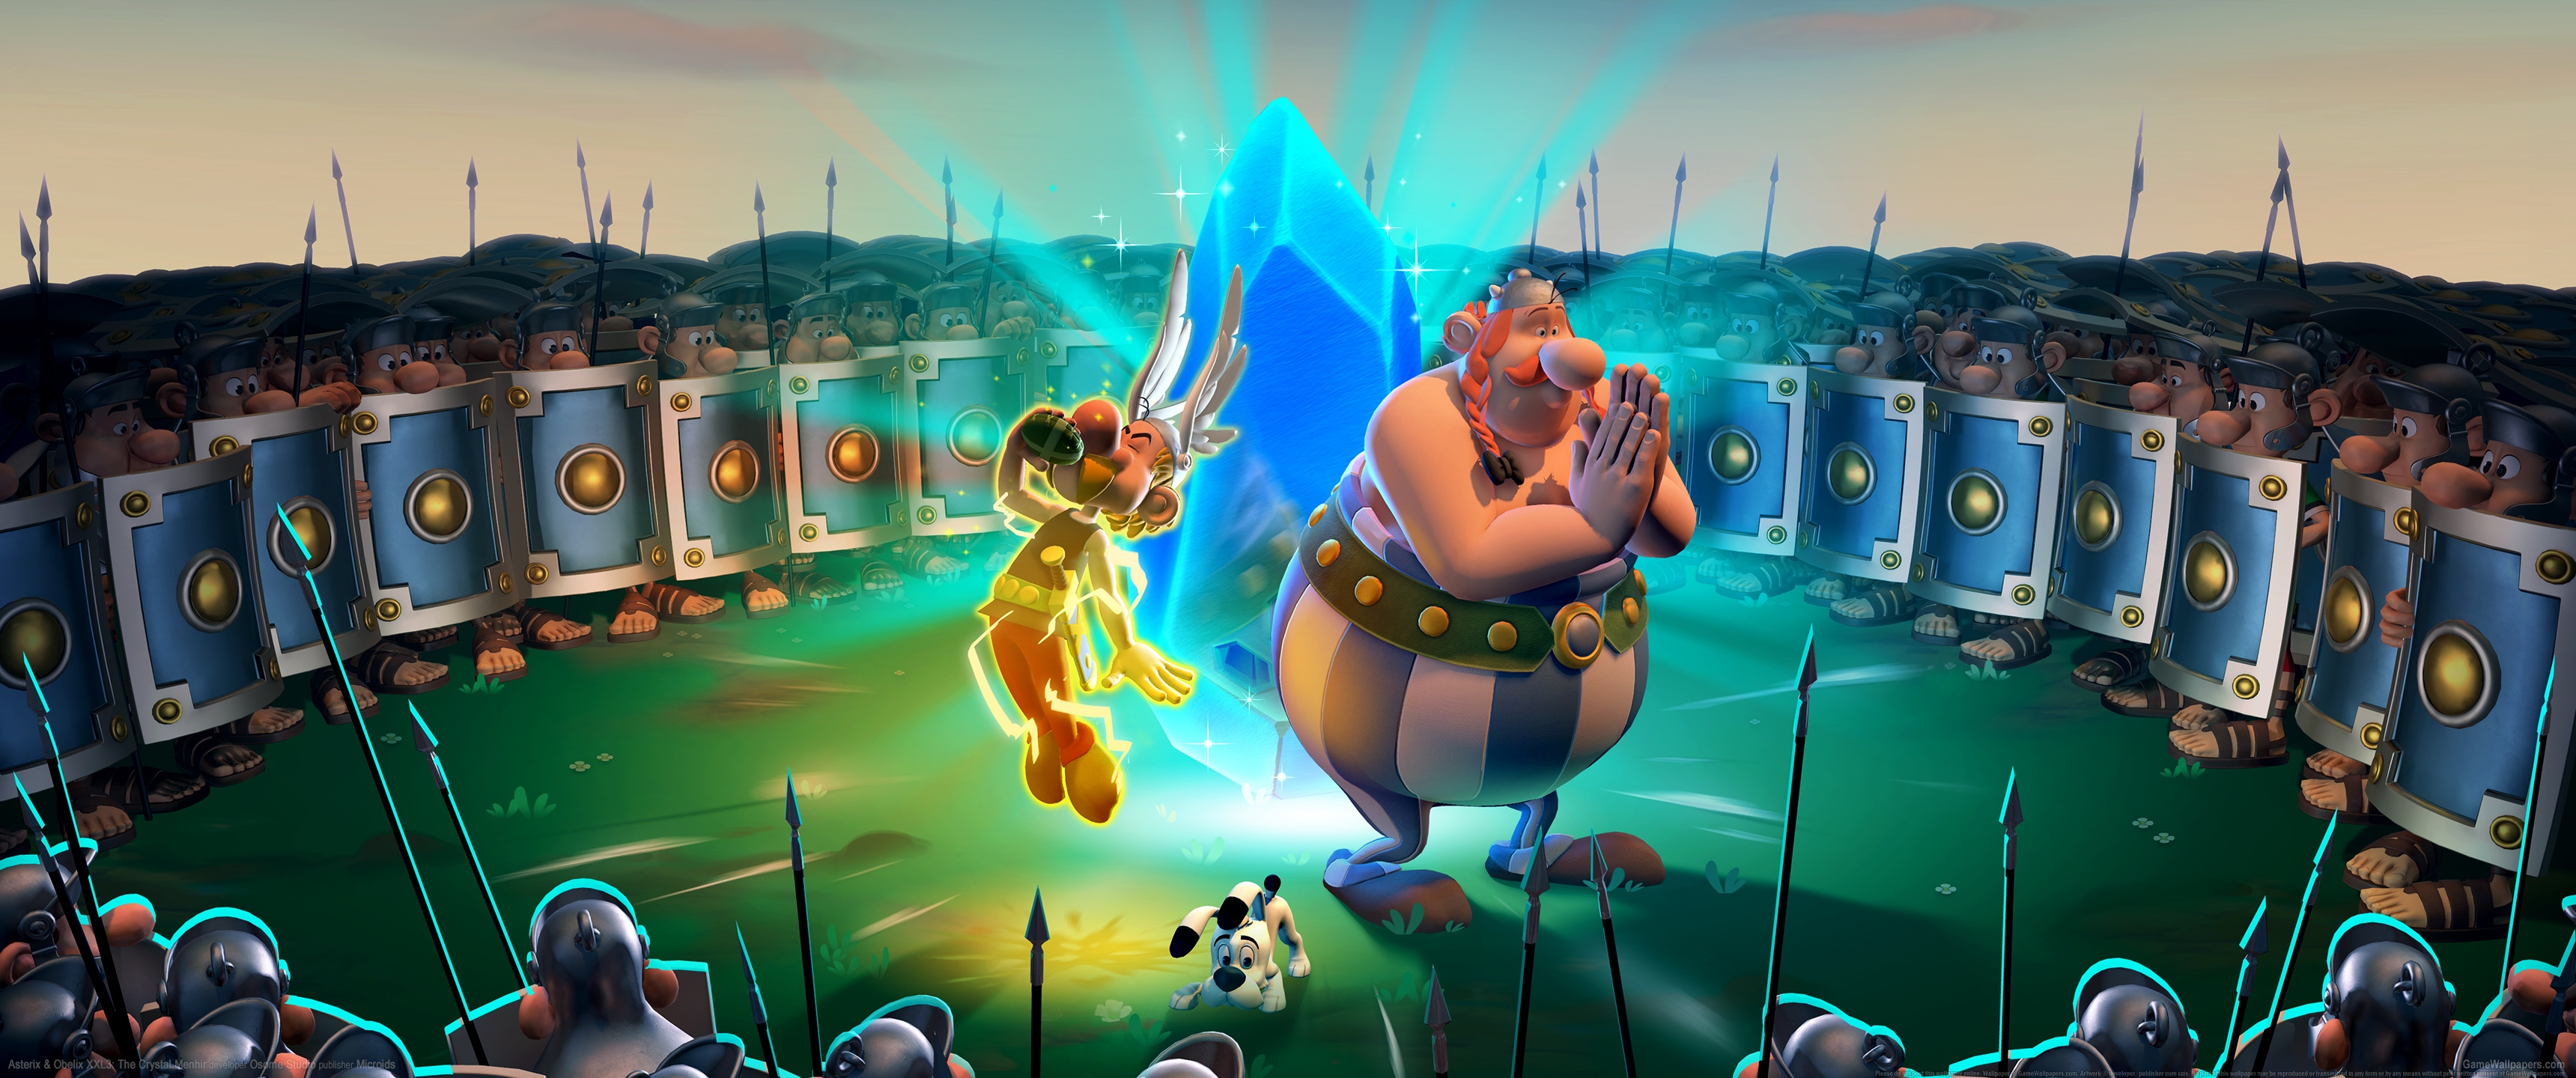 Asterix & Obelix XXL3: The Crystal Menhir 3440x1440 wallpaper or background 01